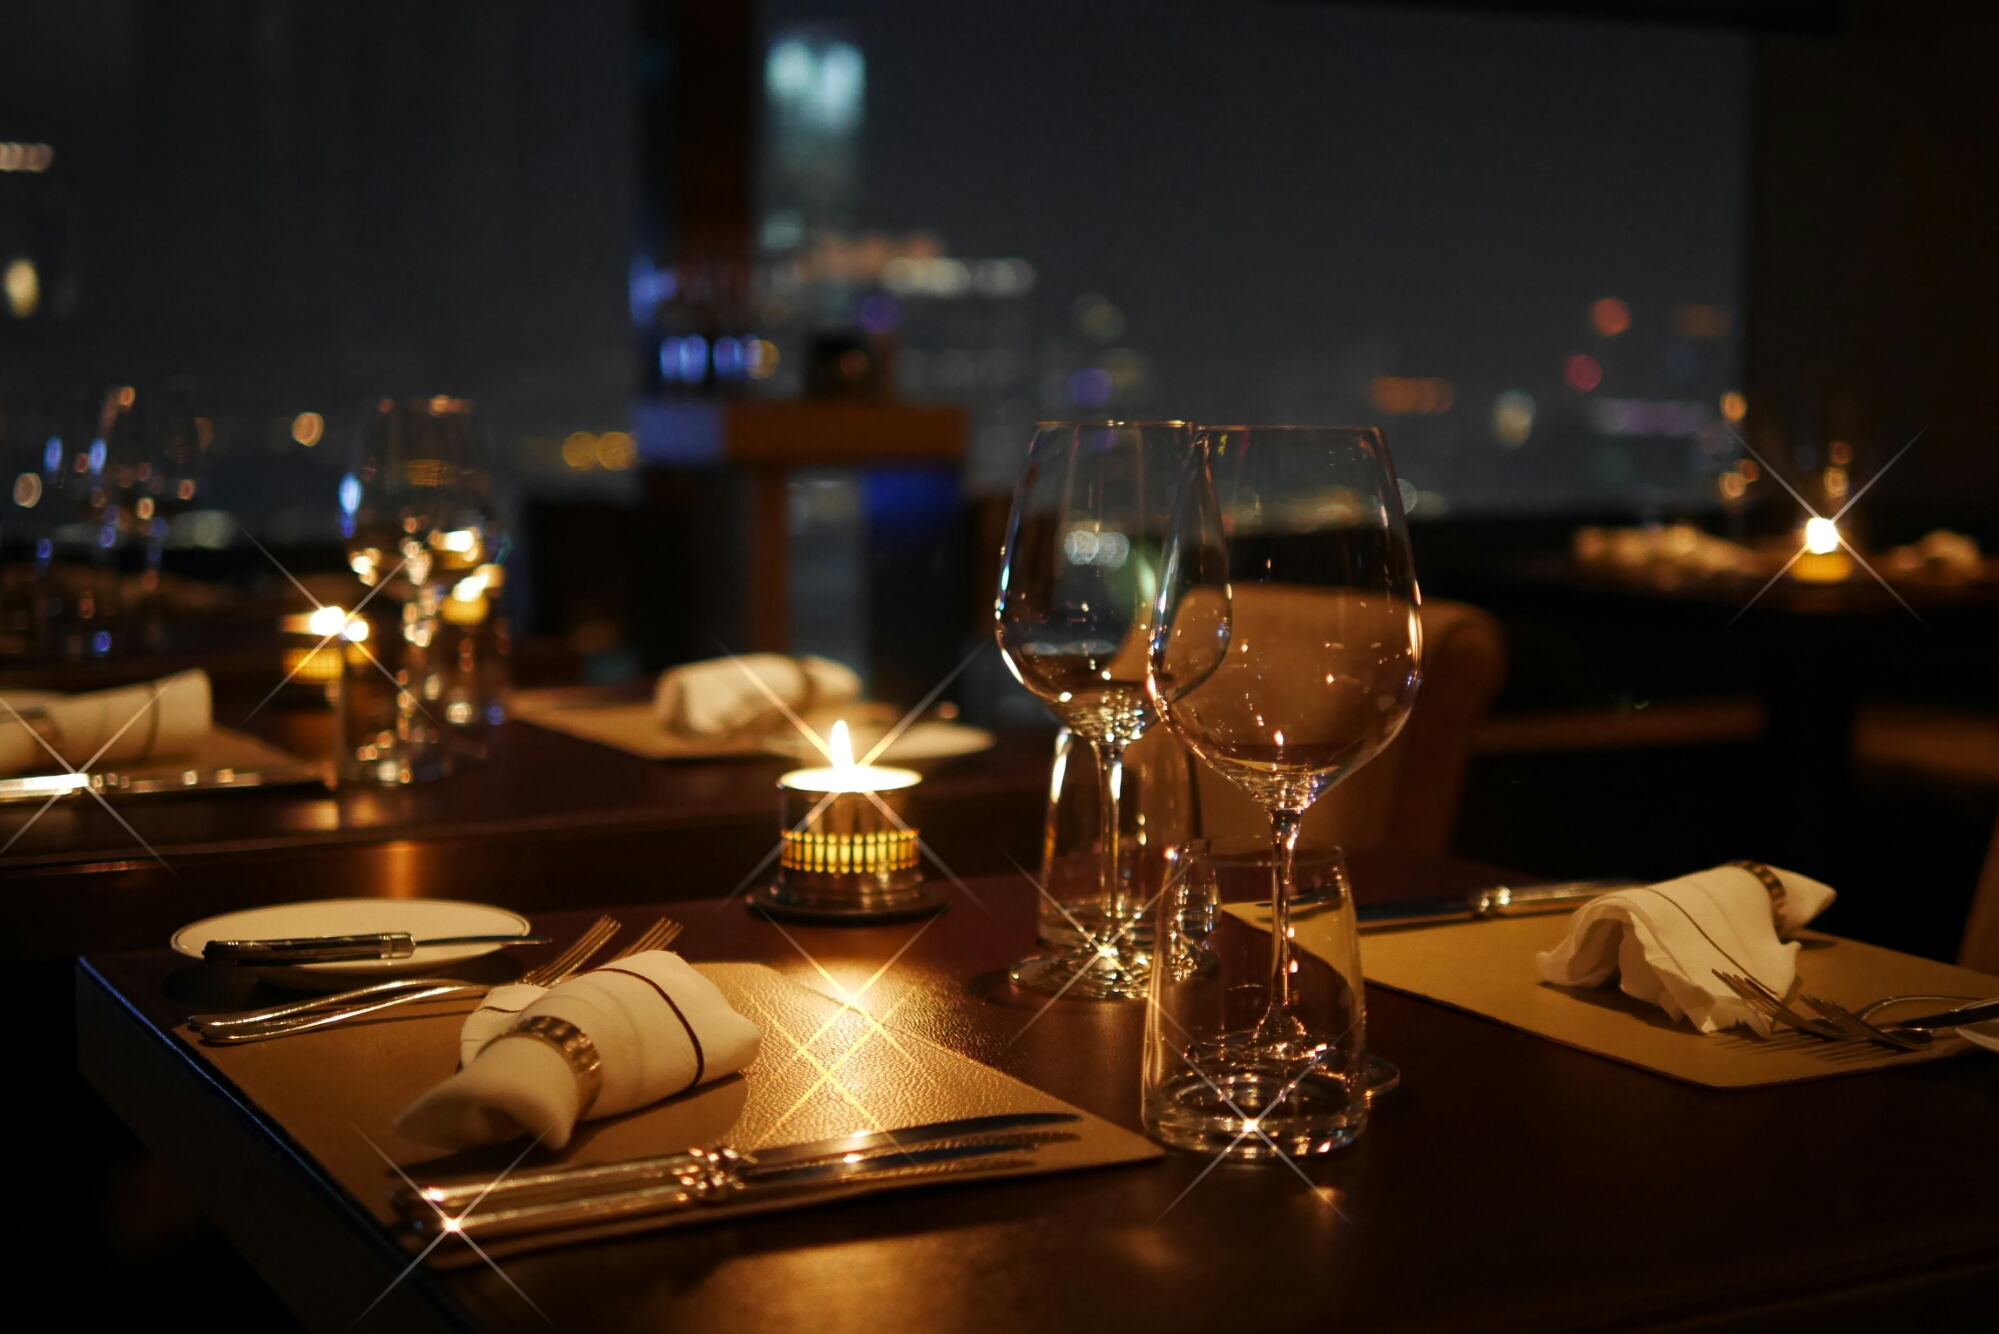 Cafe gray deluxe fine dining with delicious wines and